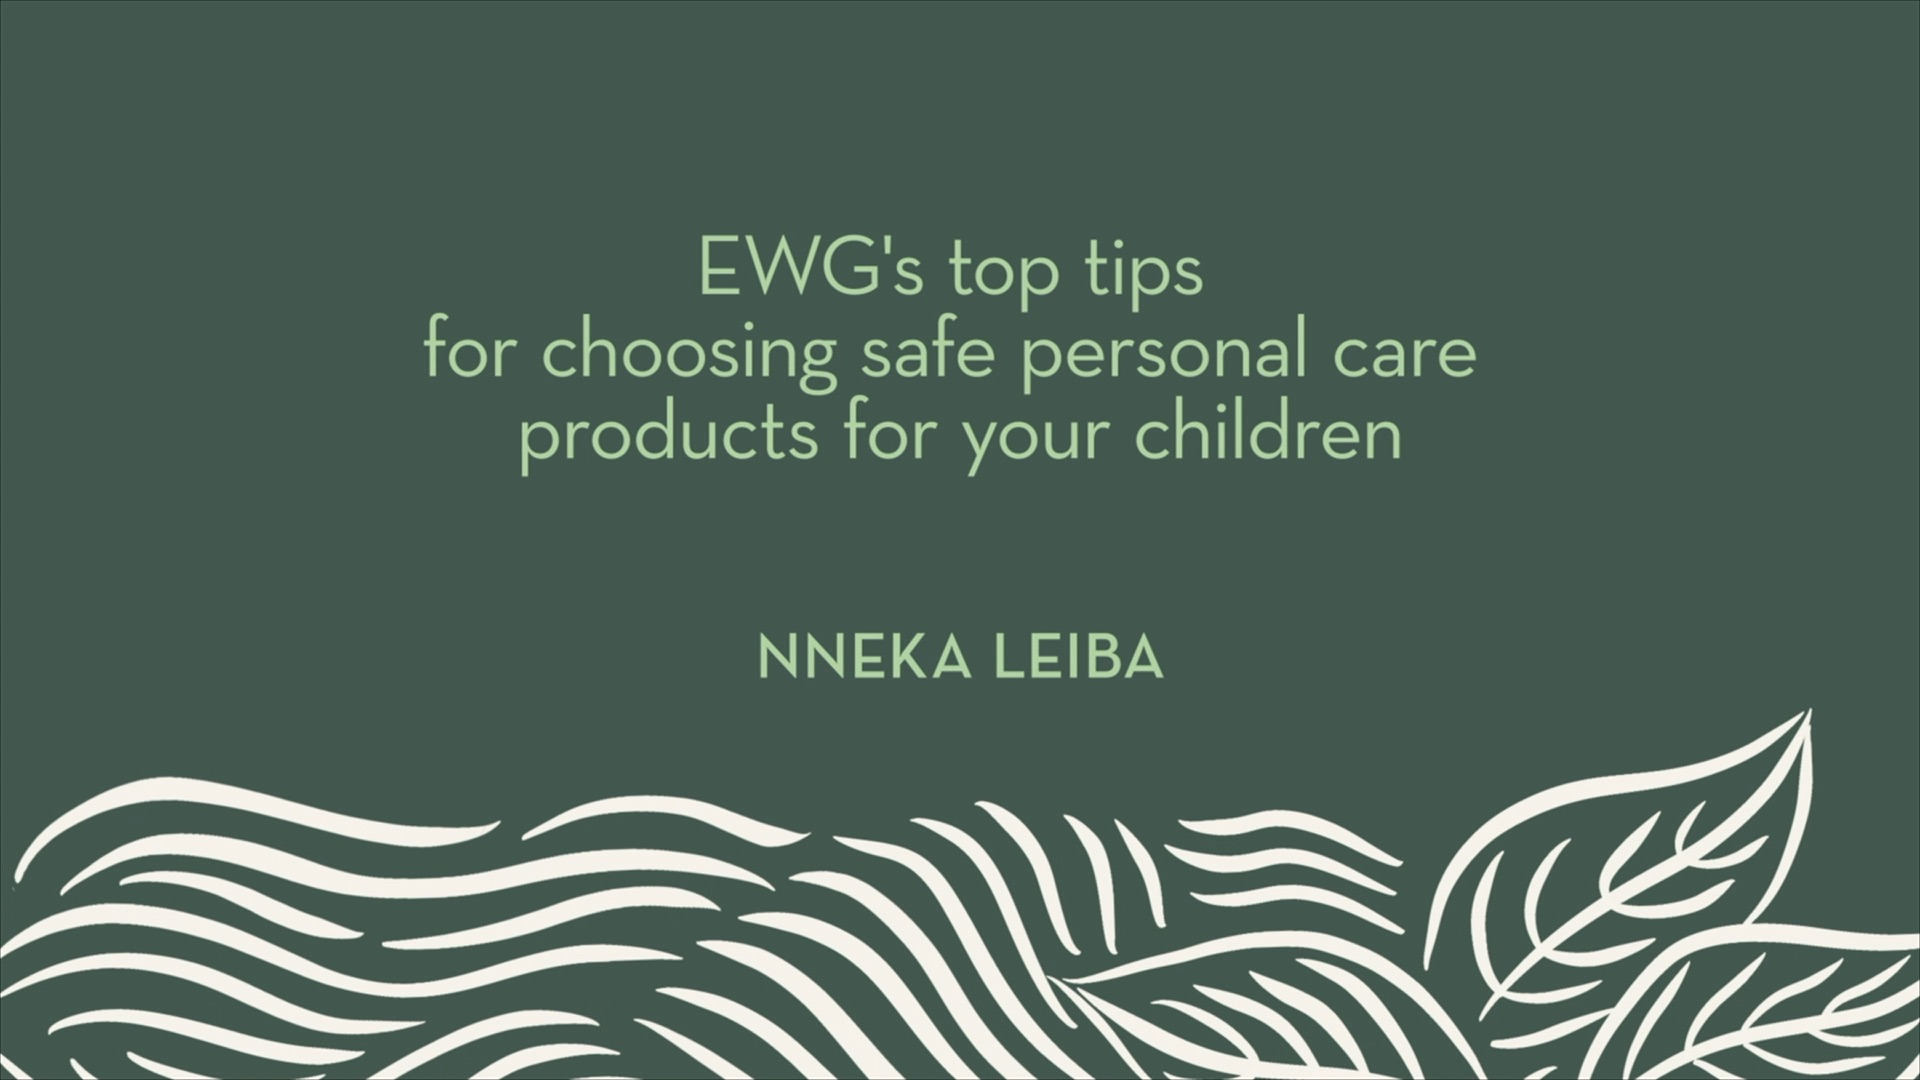 Nneka Leiba | EWG's top tips for choosing safe personal care products